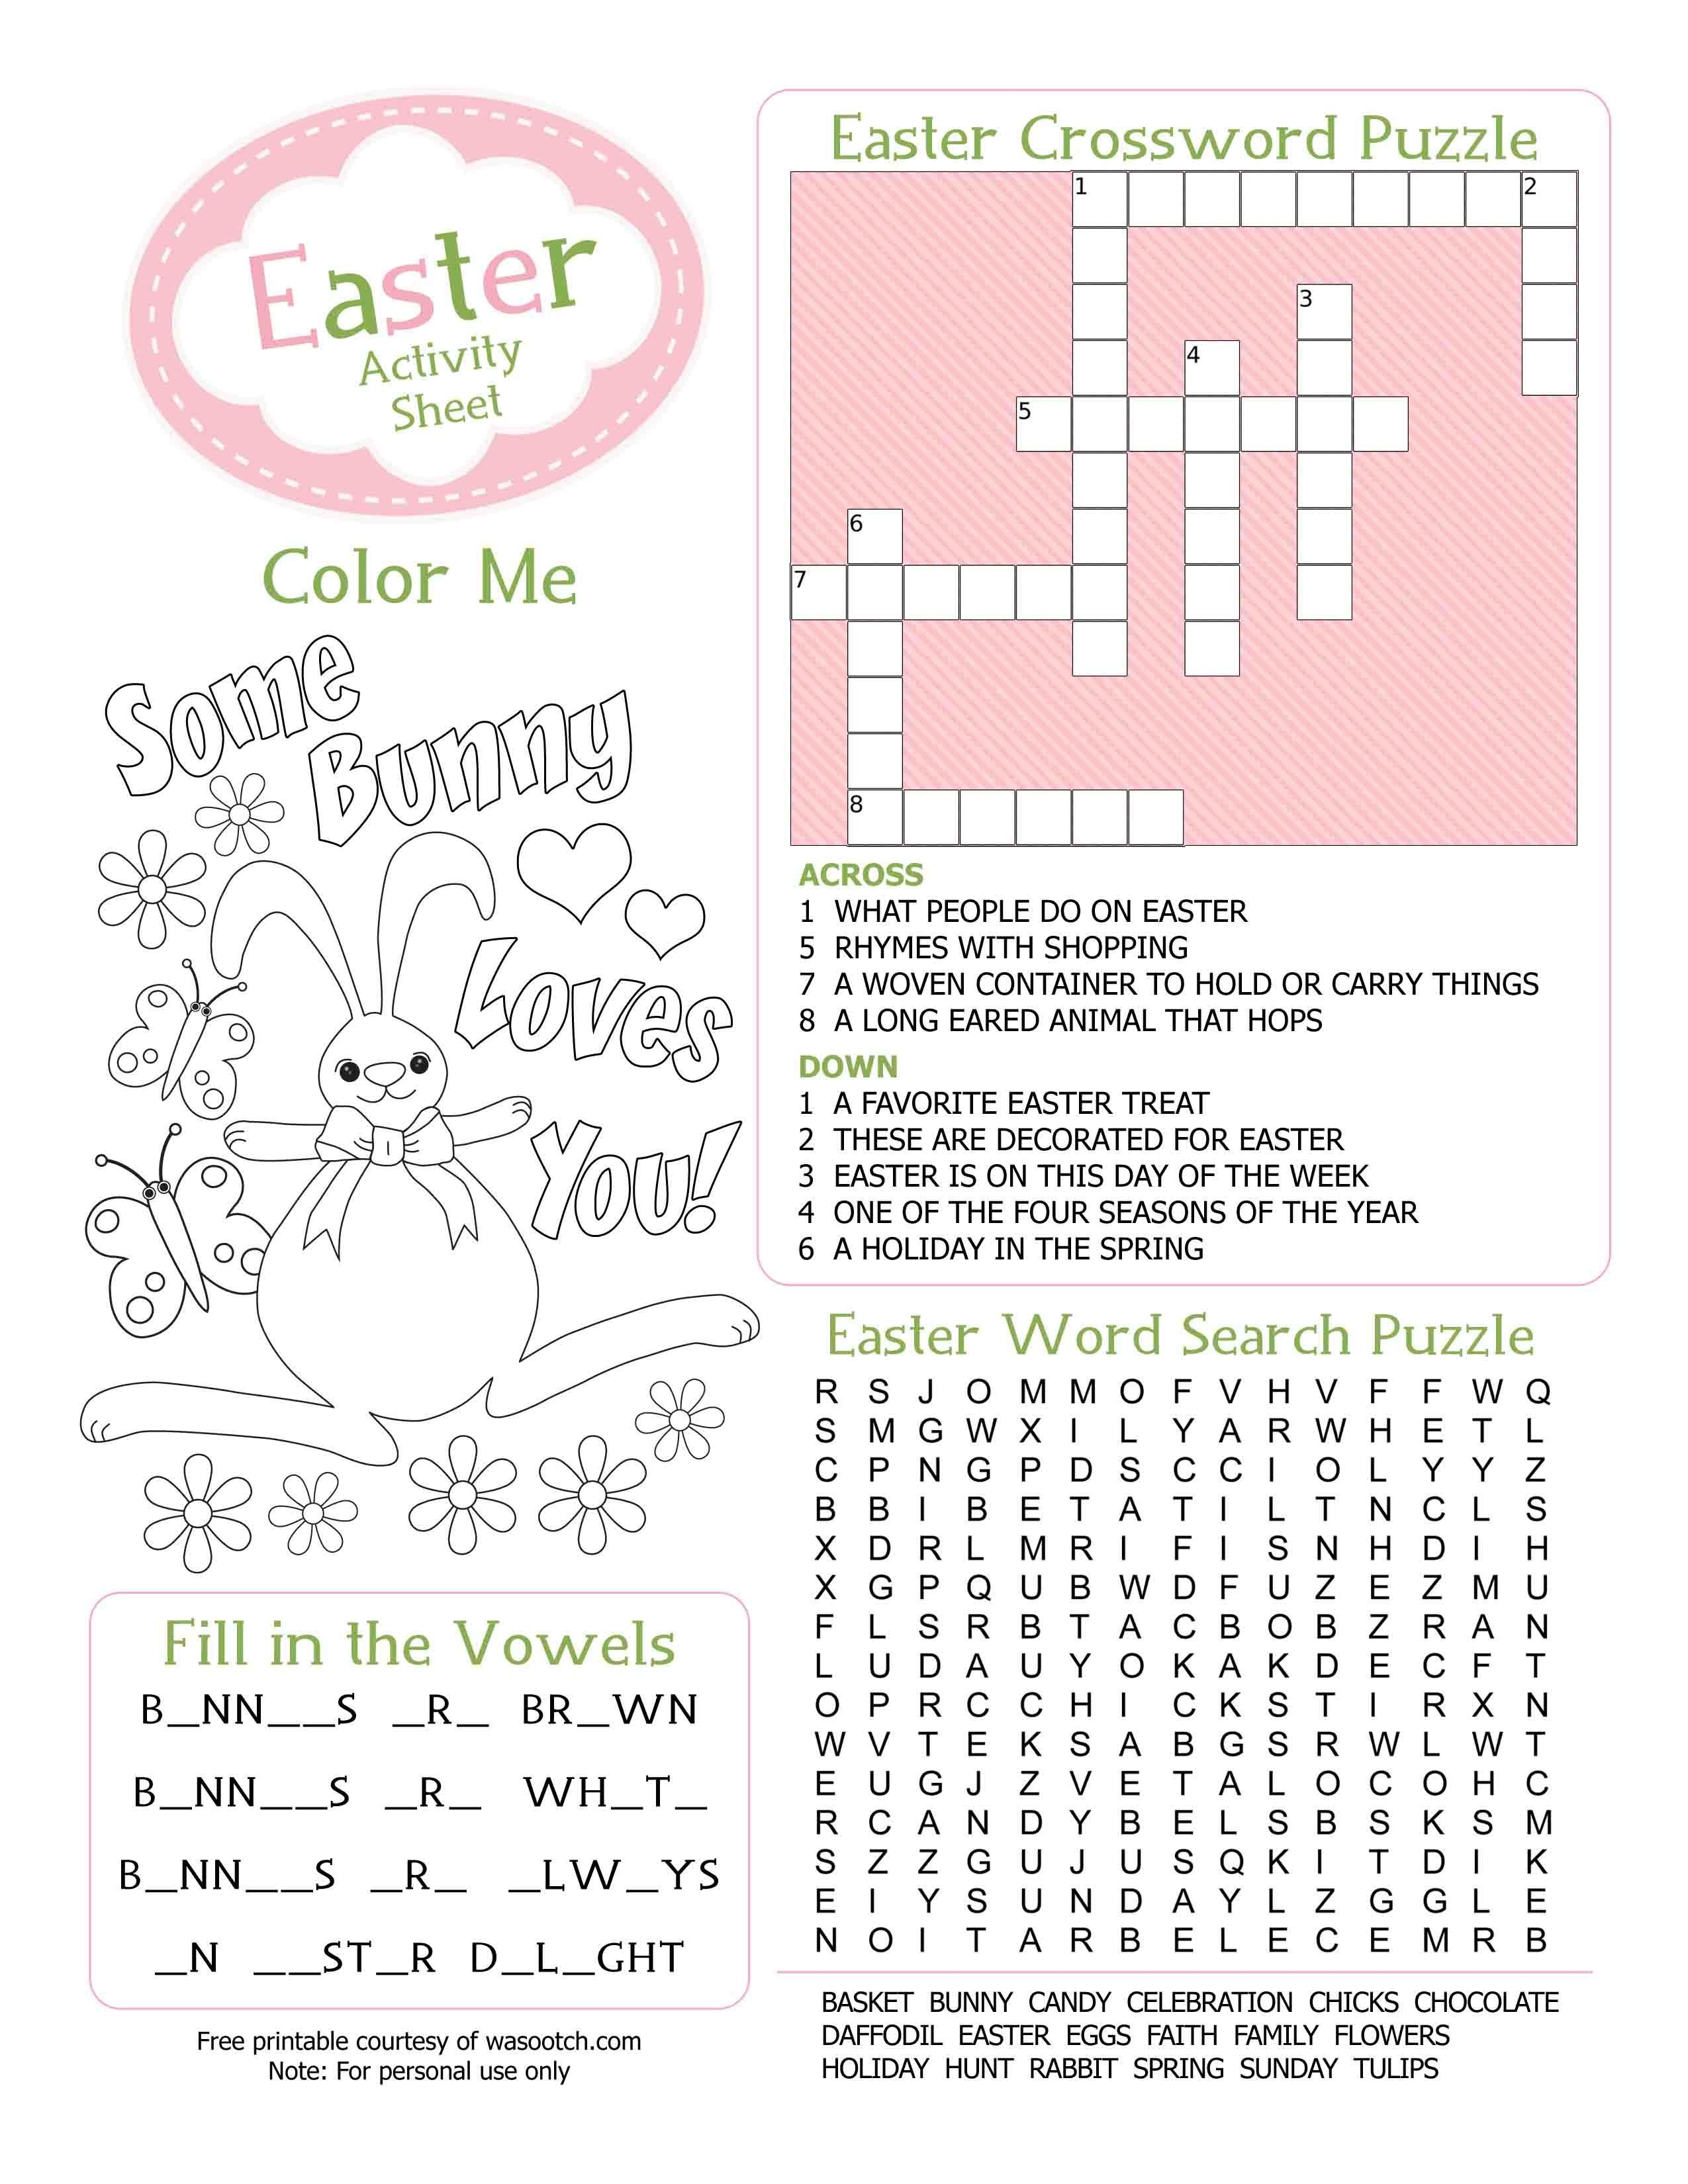 Easter Kid's Activity Sheet Free Printables Available @party - Free Printable Games For Toddlers